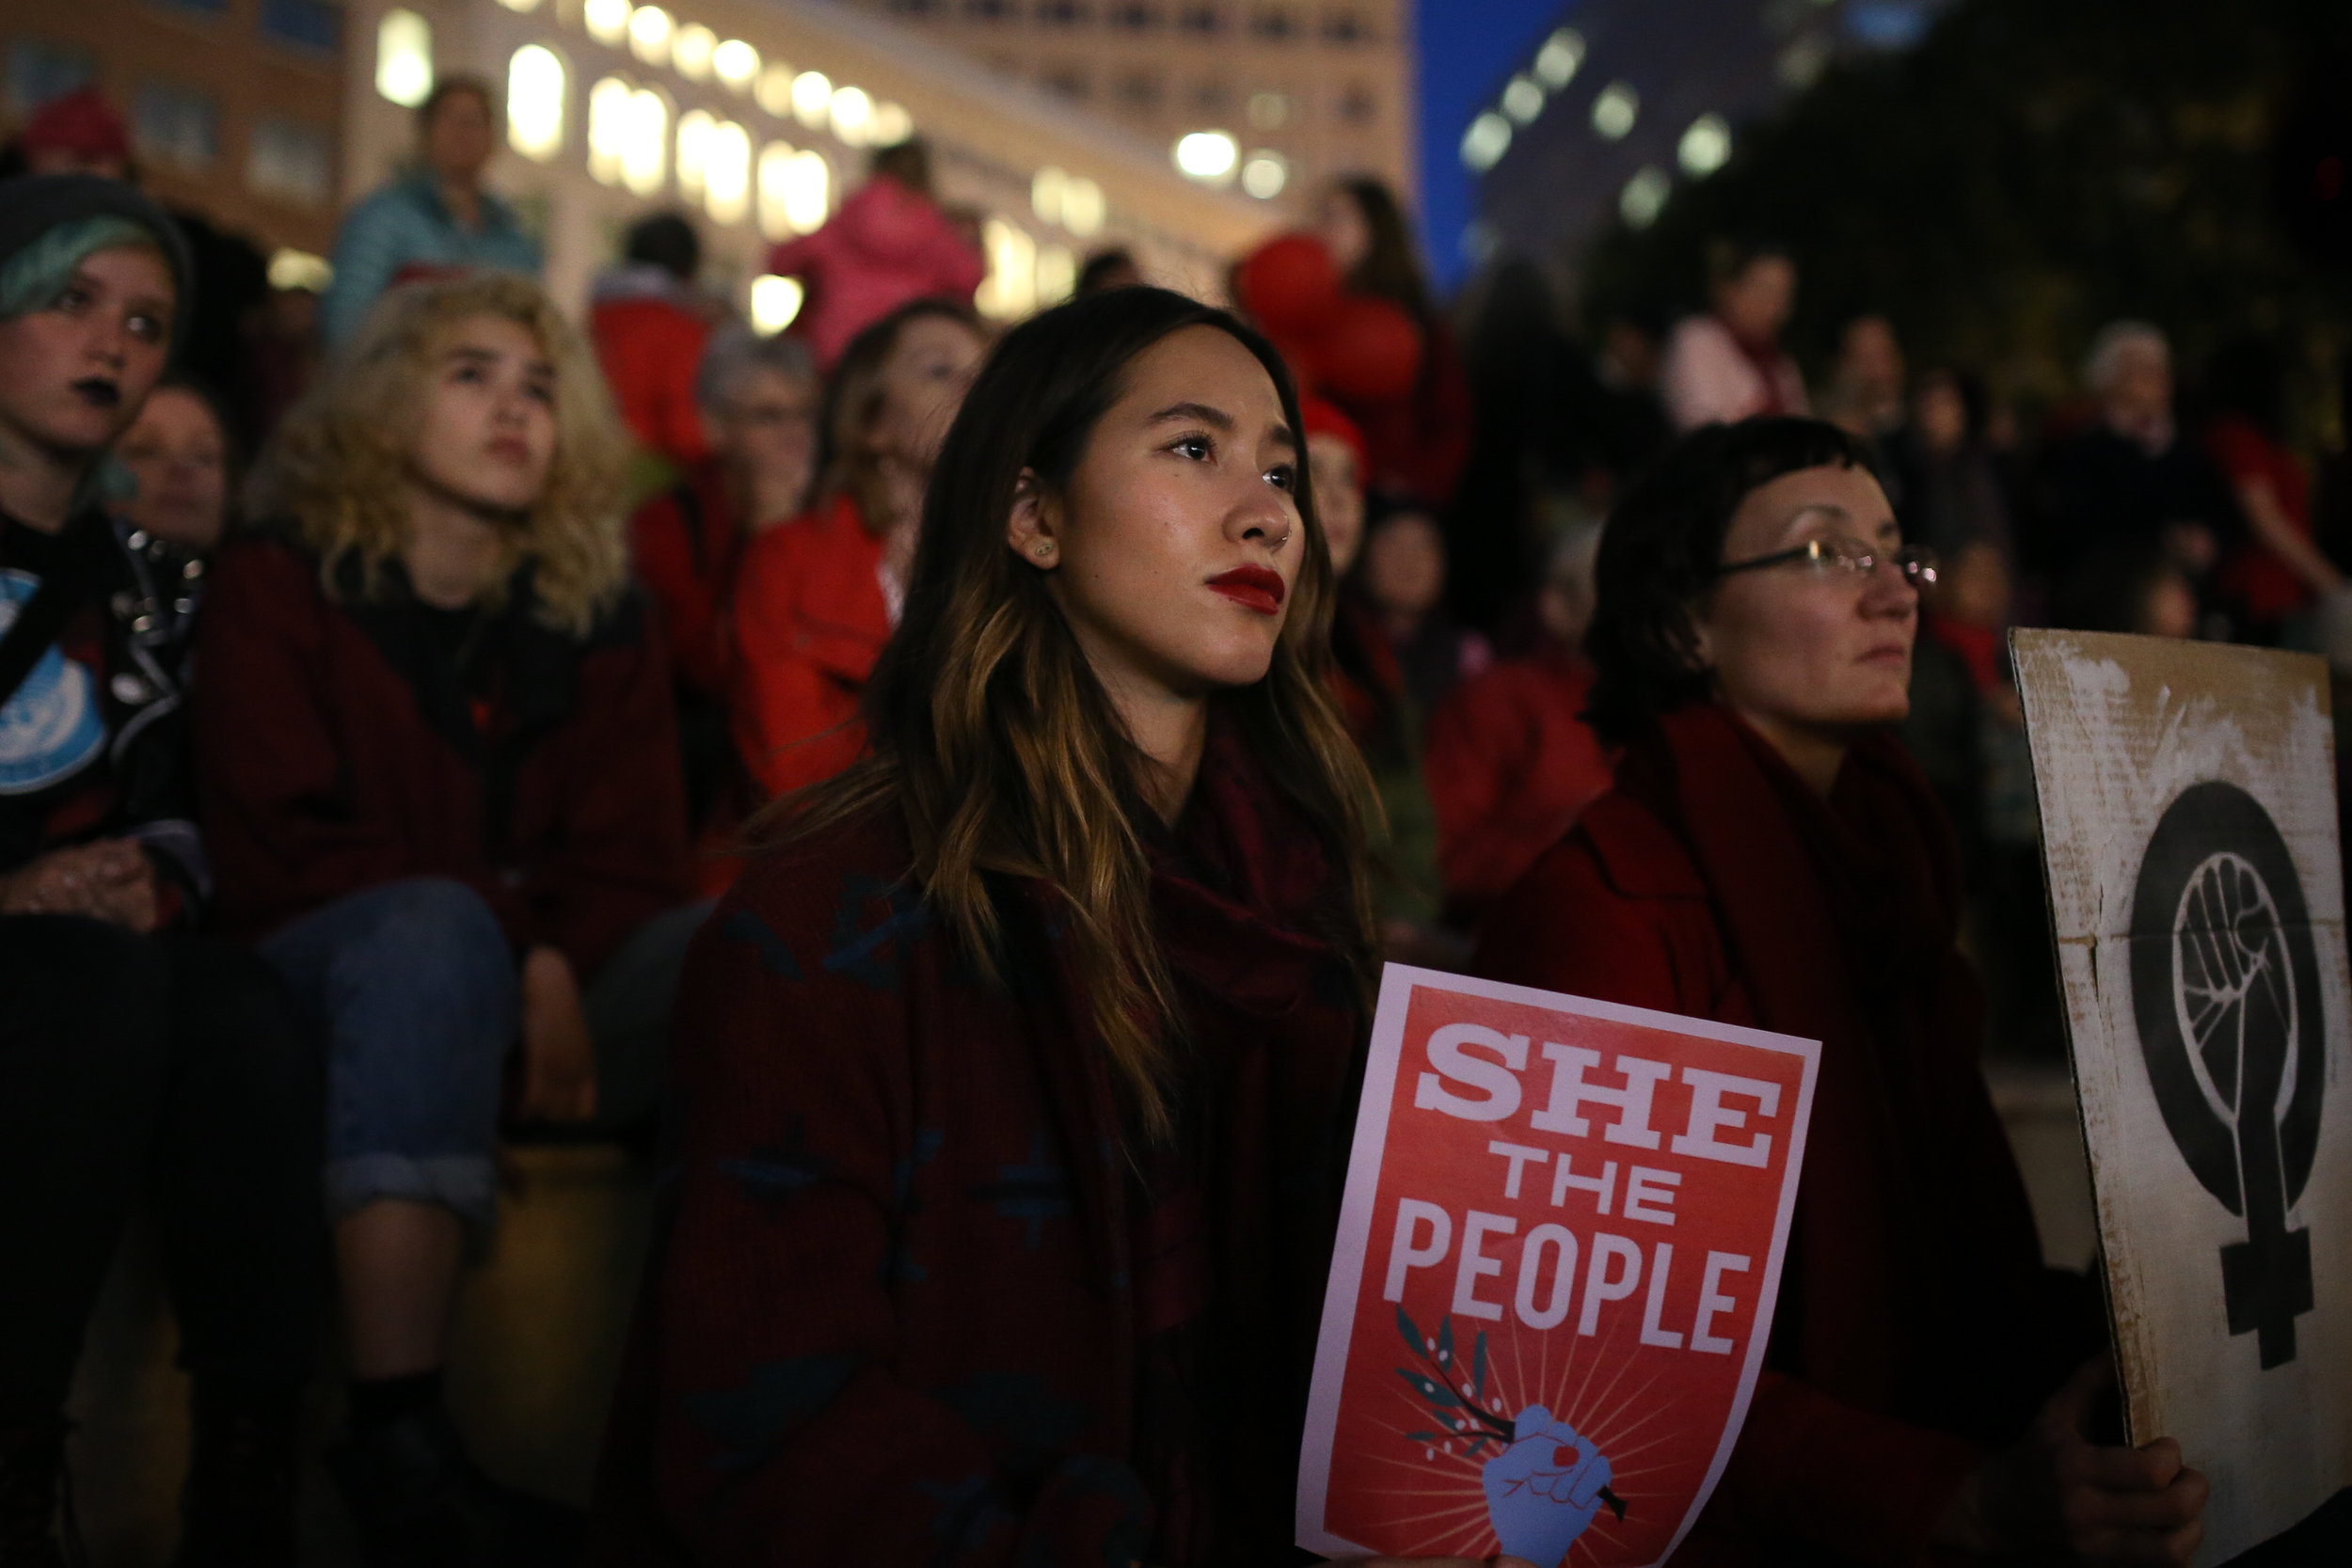 Women mark International Women's Day by attending a protest at City Hall in Oakland, California